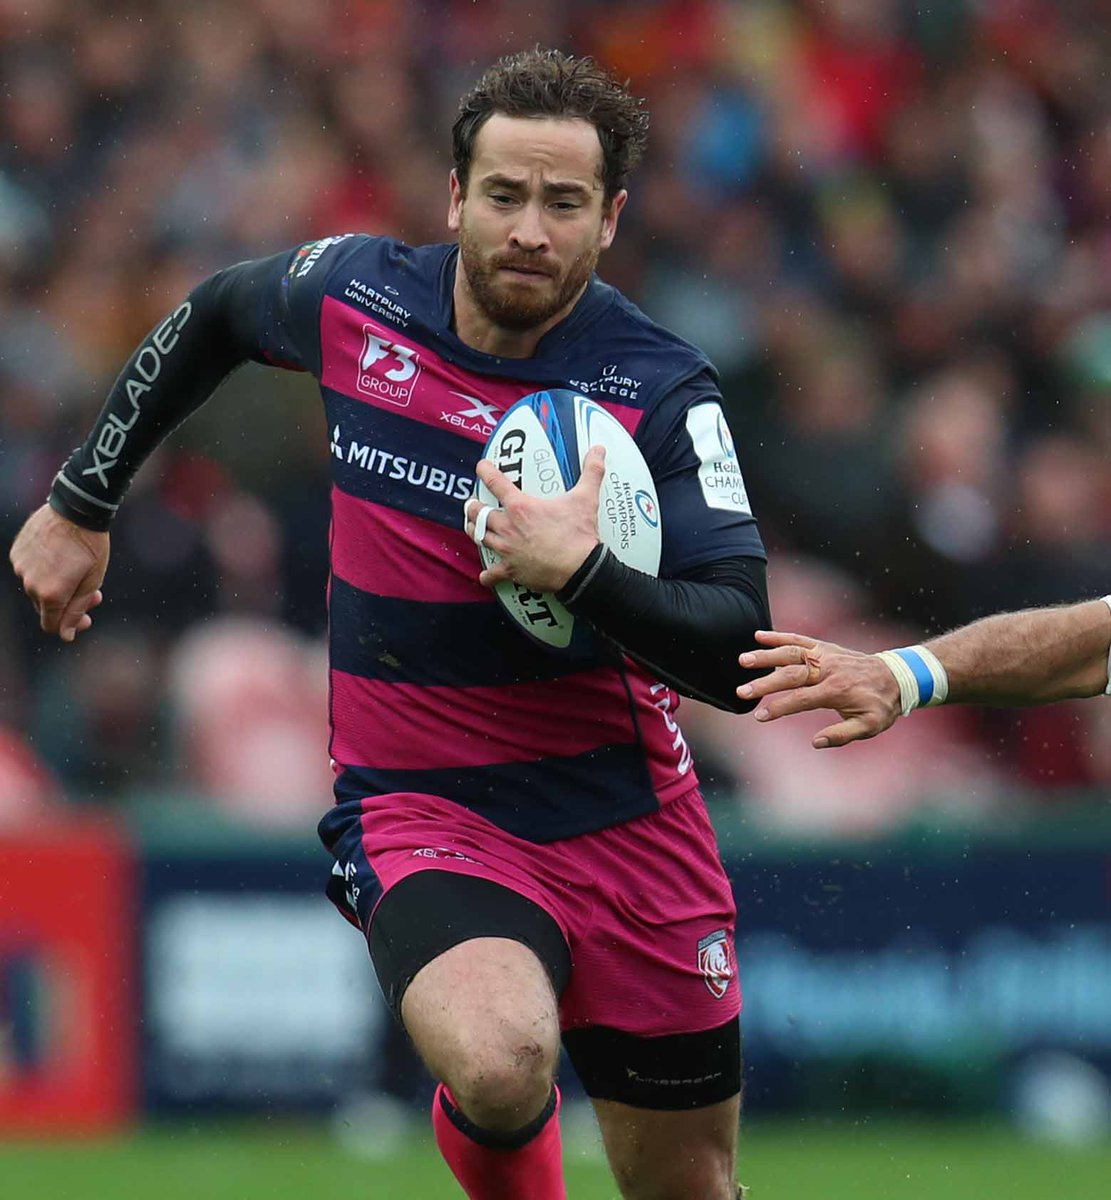 test Twitter Media - Stuart Barnes looks at 10 players who caught the eye after round 1 of the Champions Cup: https://t.co/7f8JW0IUwT https://t.co/t4NnSVoAt4